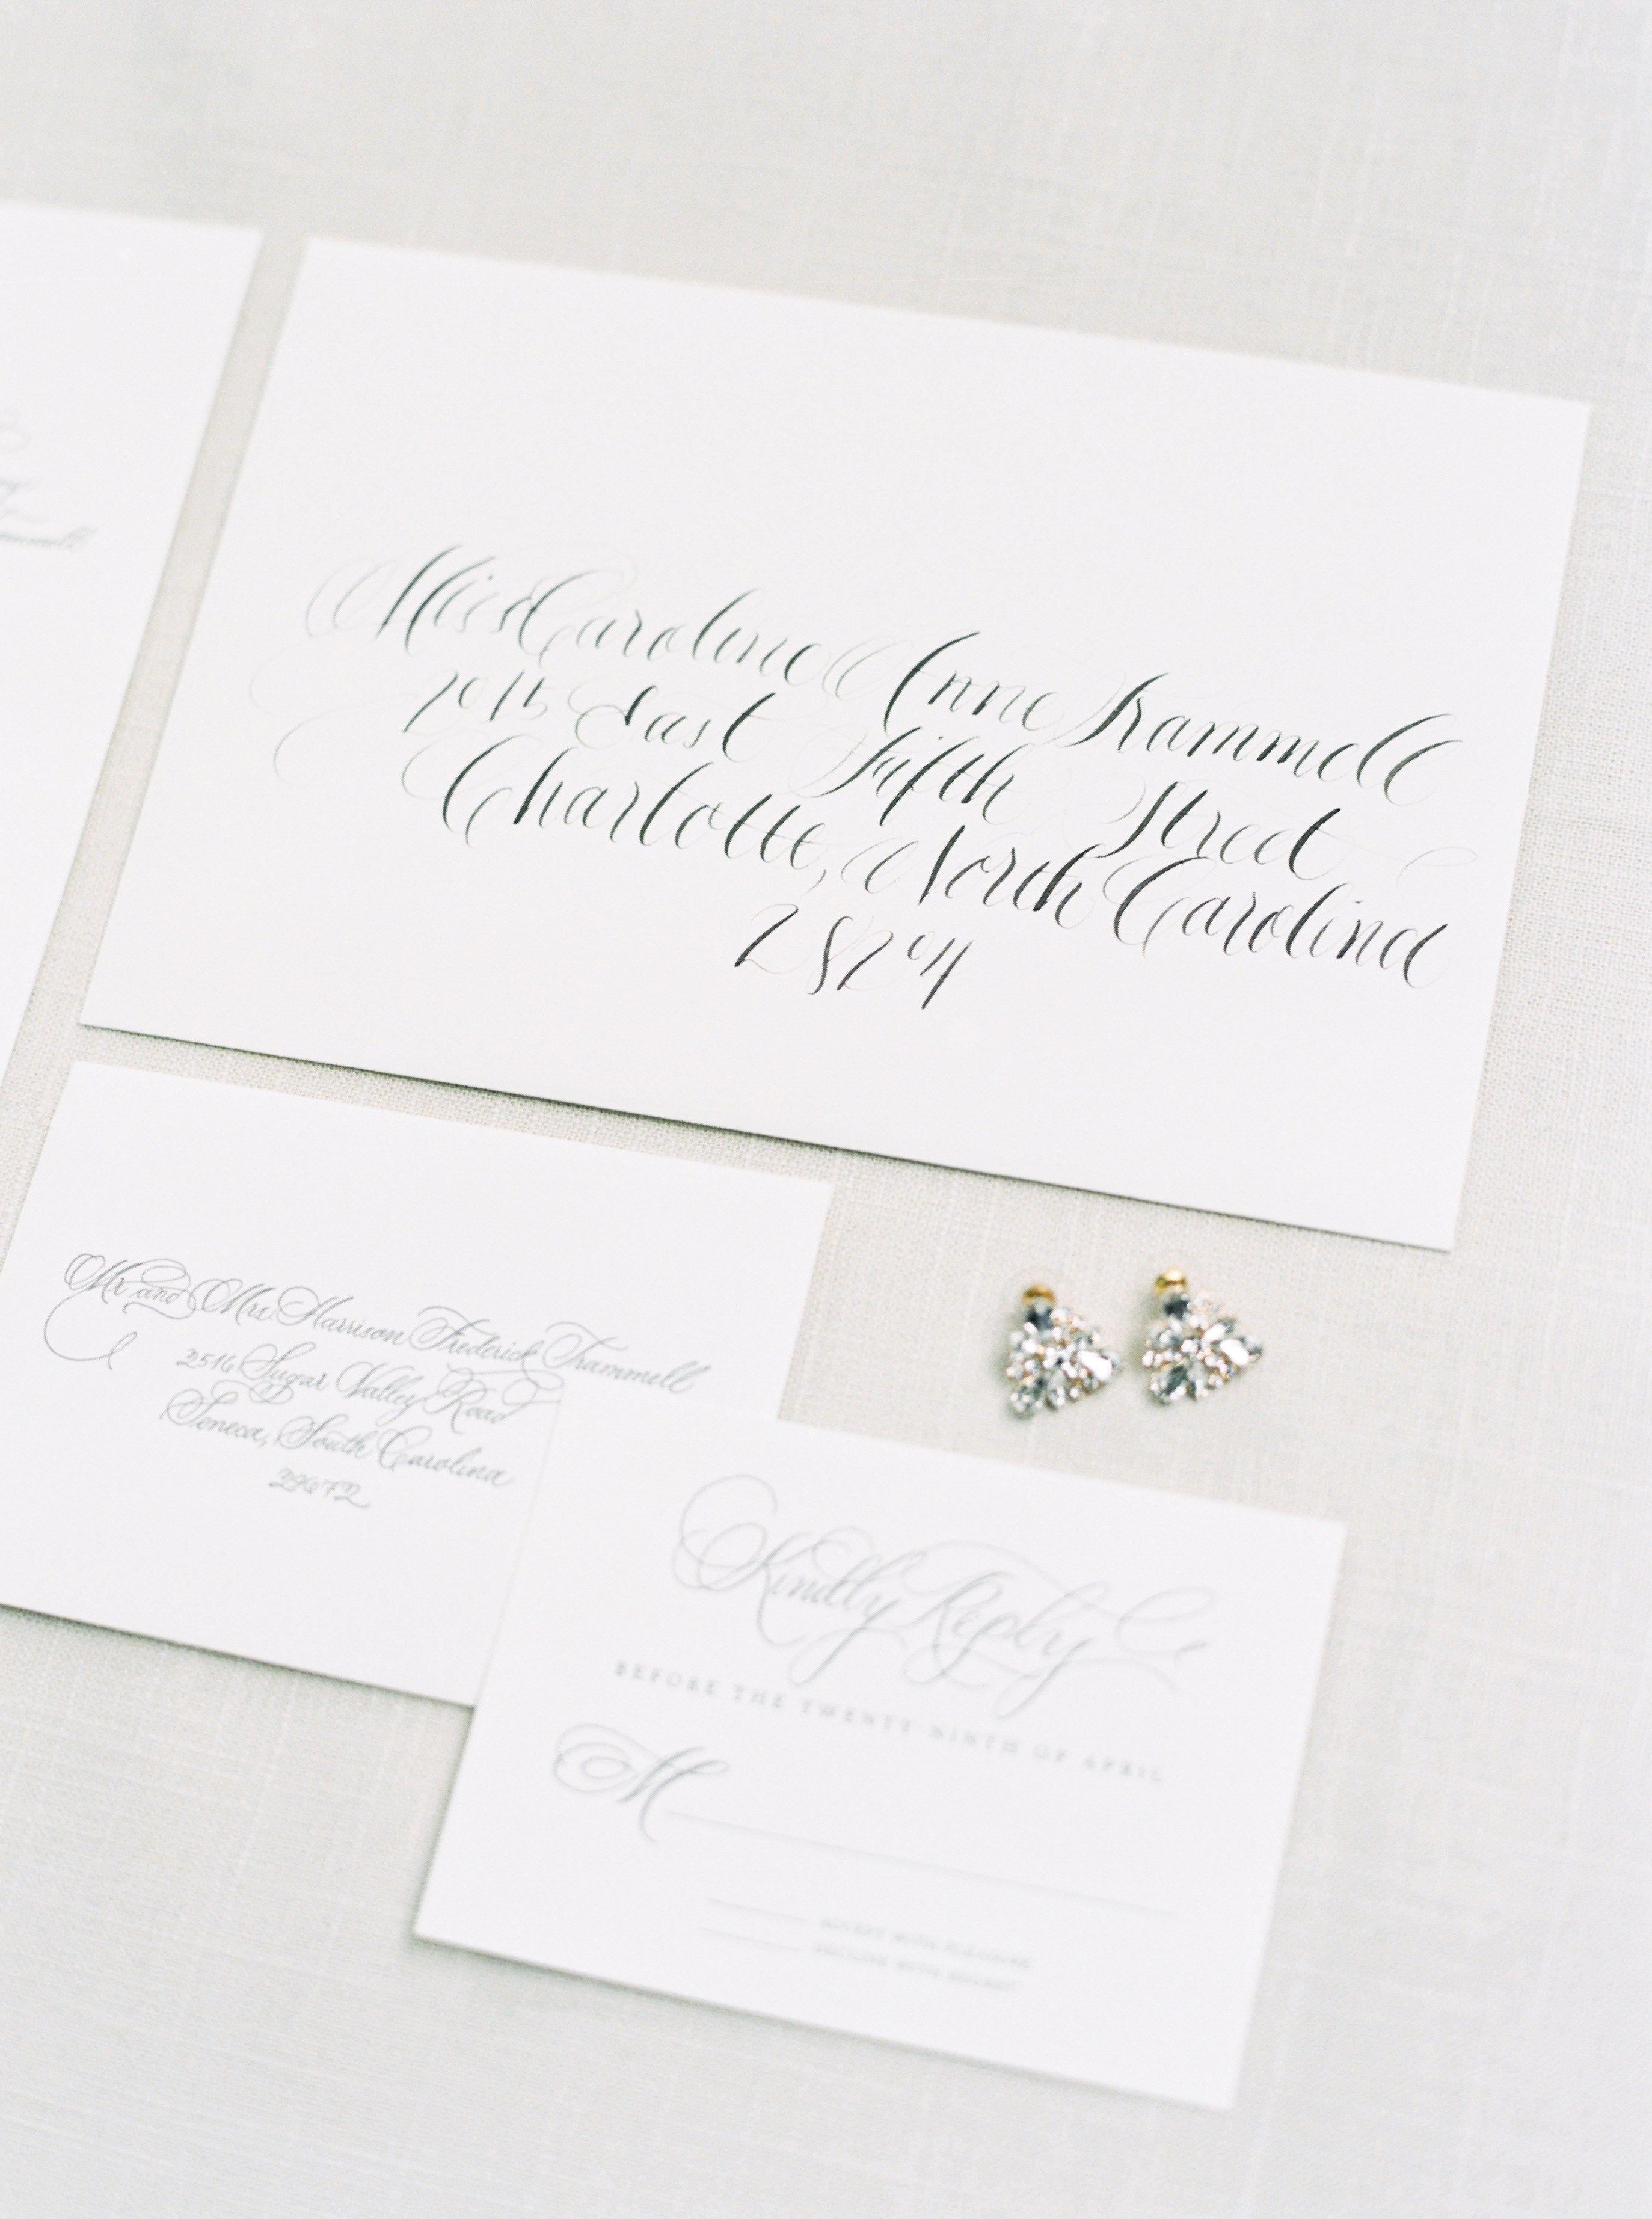 Classic southern wedding invitation calligraphy for North Carolina ...